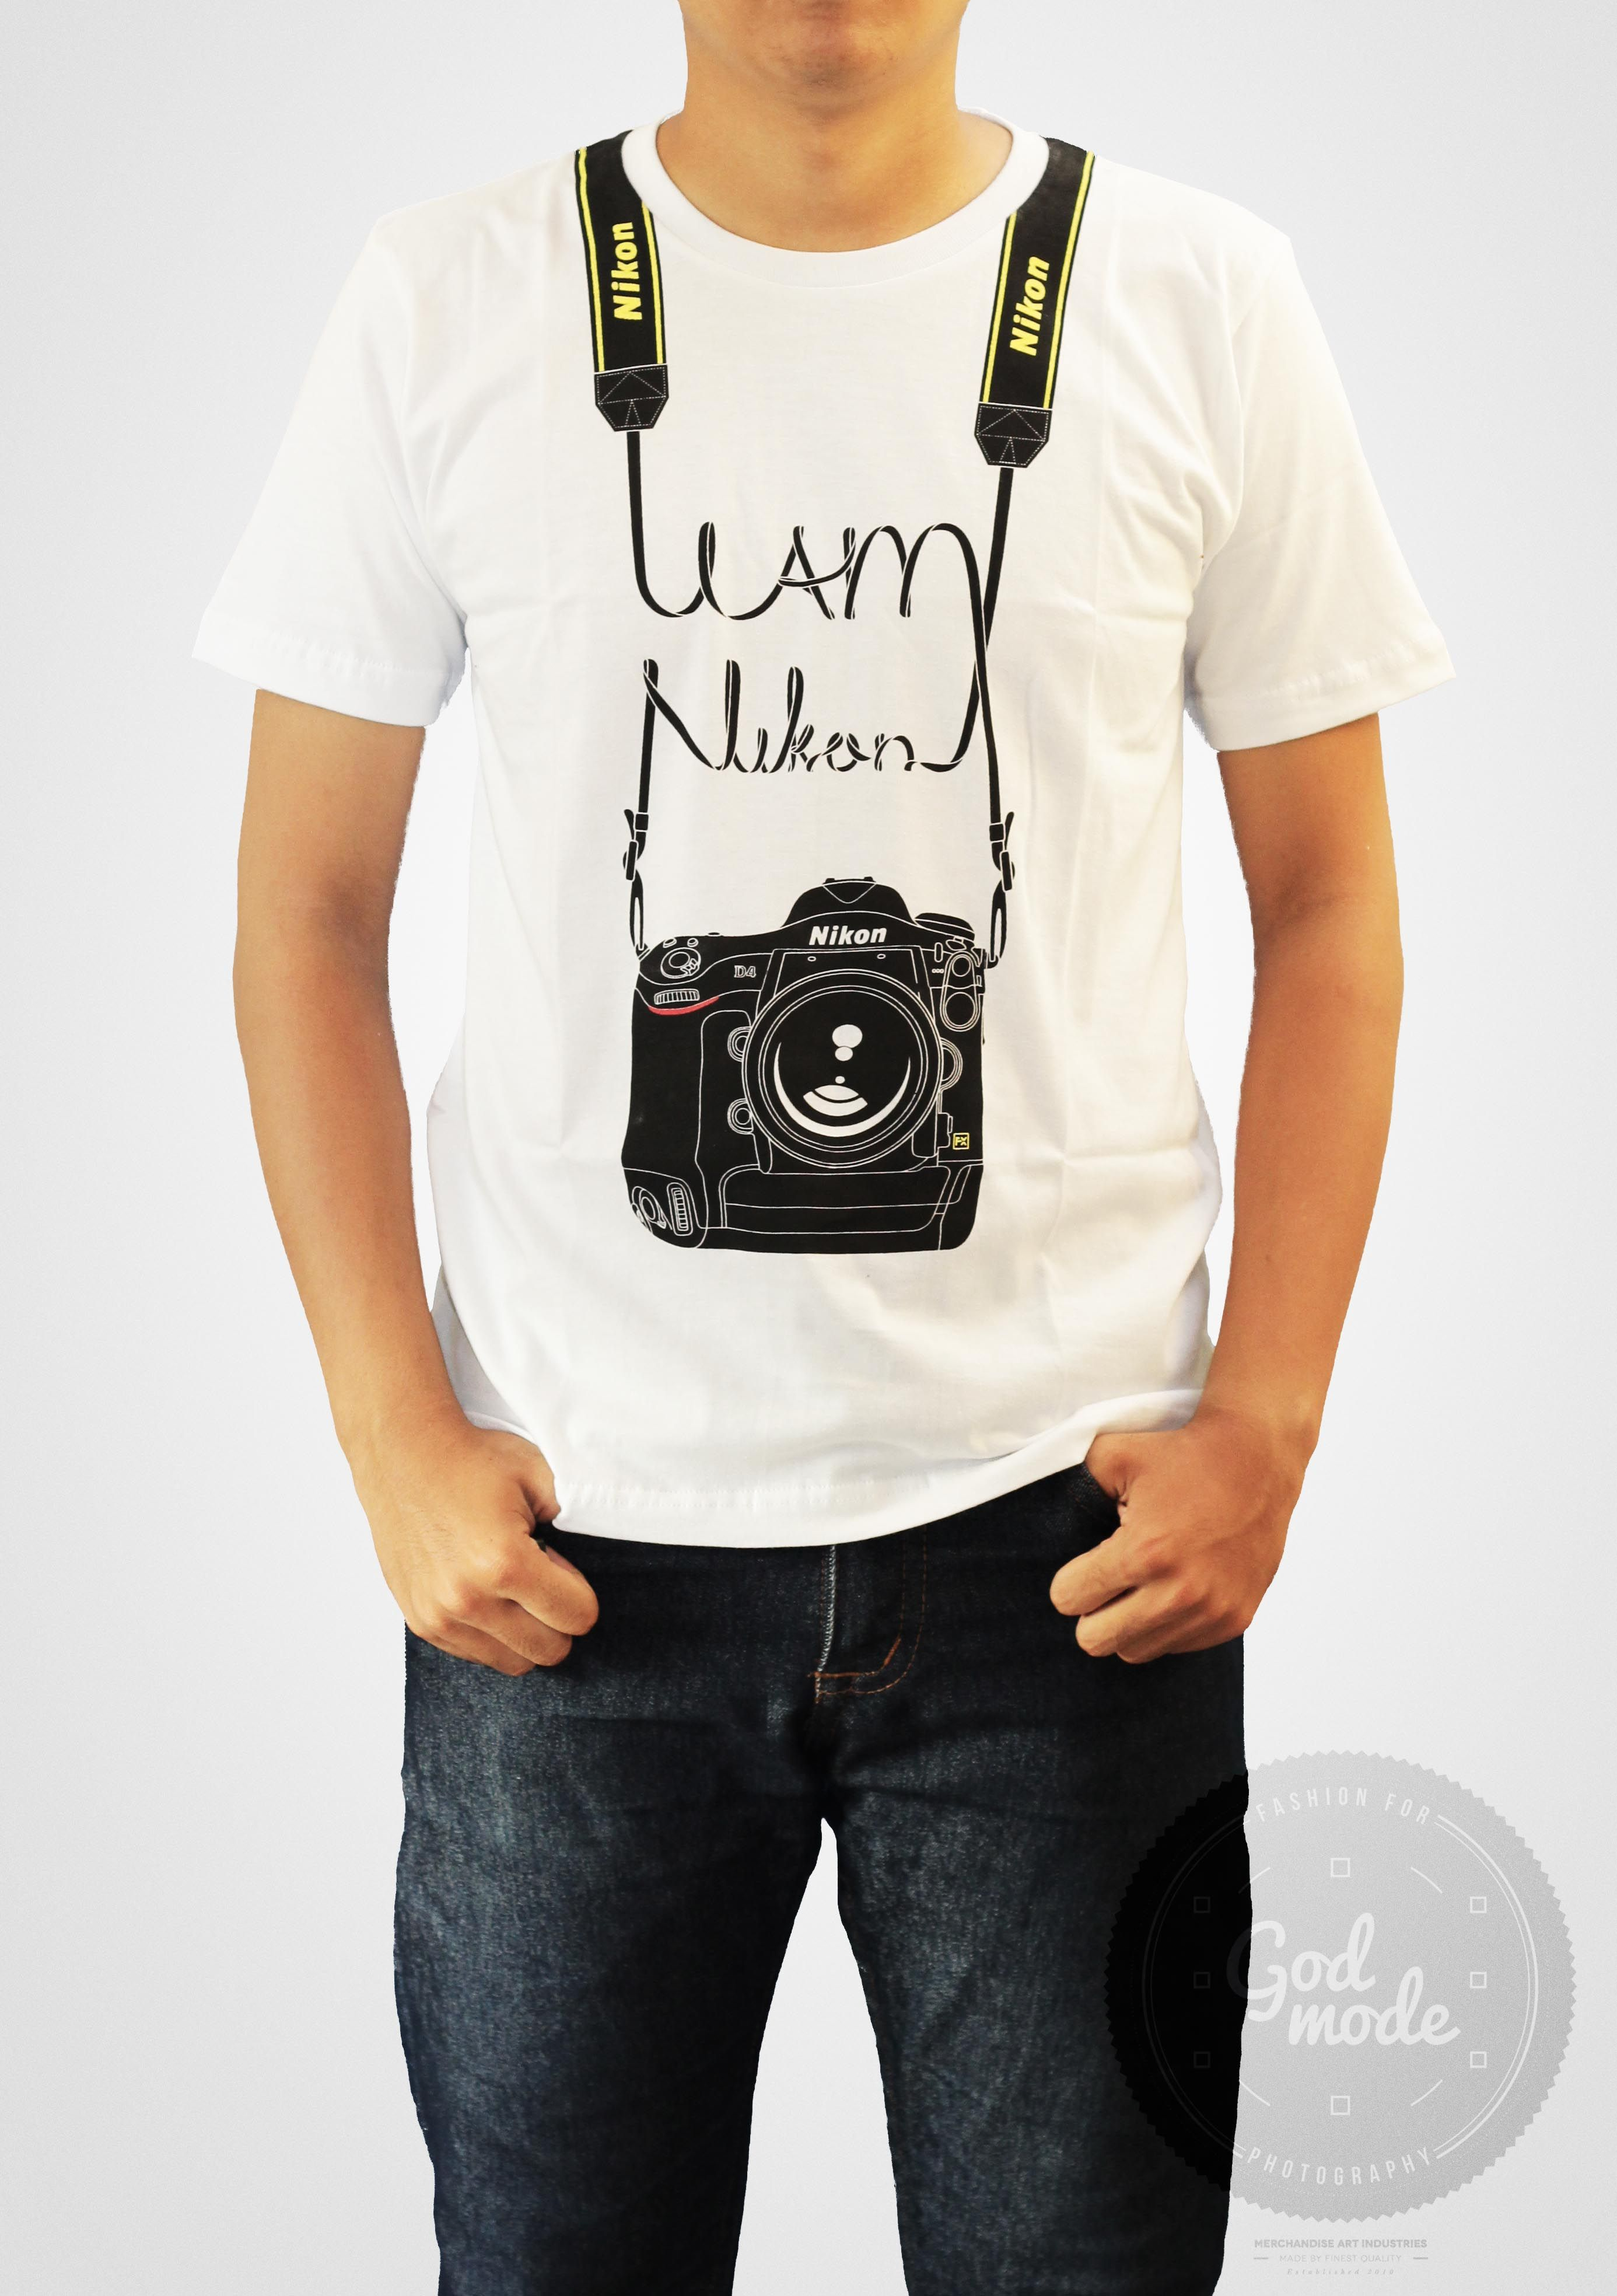 Black dog t shirt ebay -  18 Usd Nikon T Shirt Photography I Am